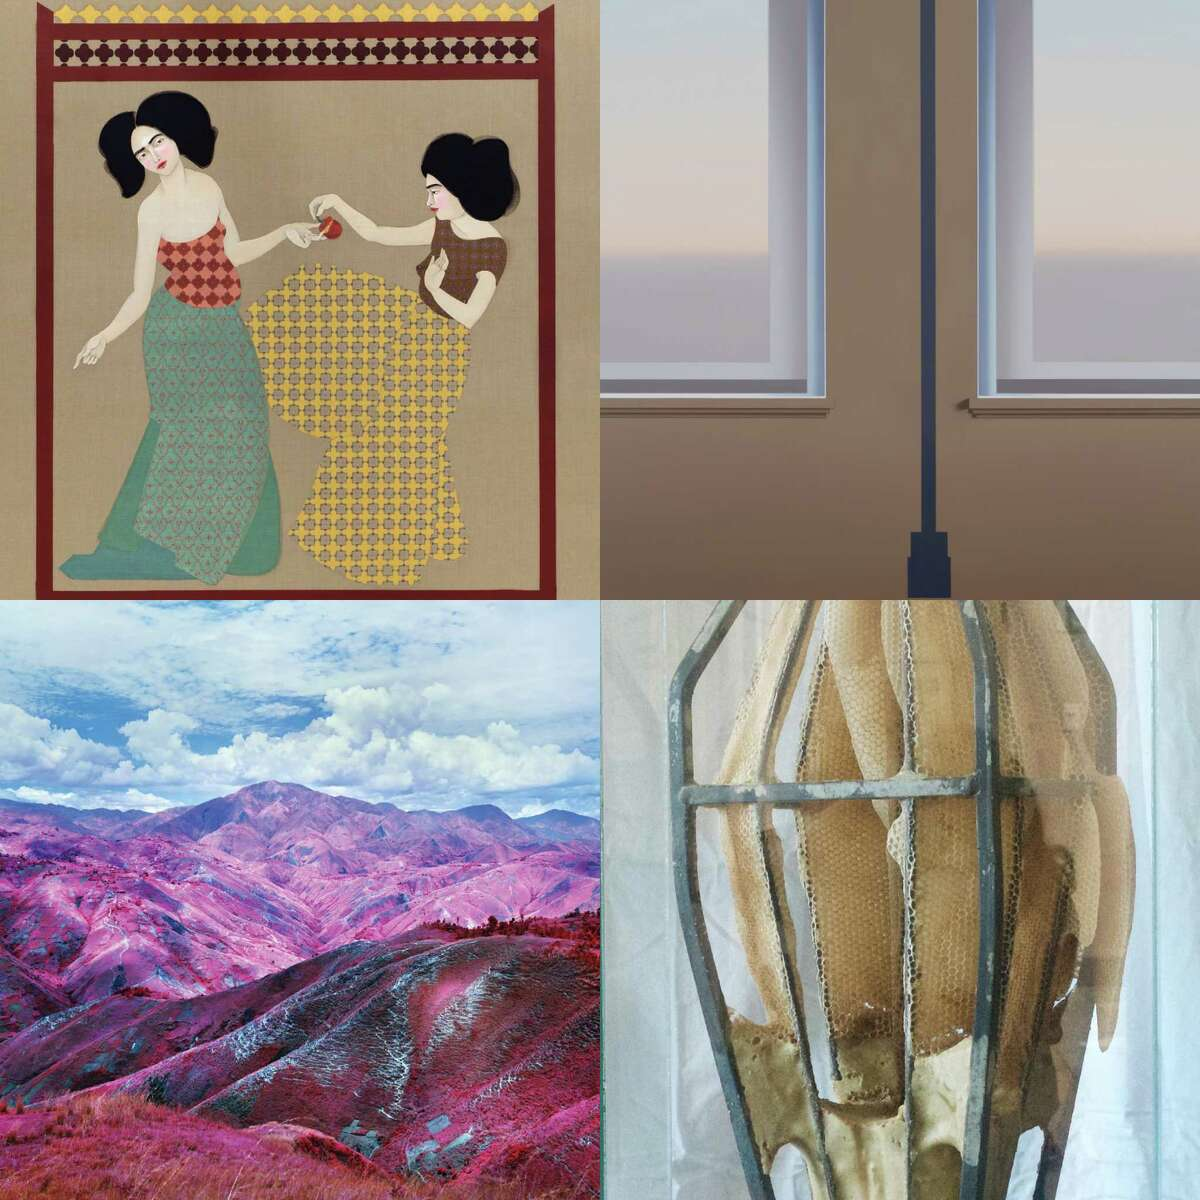 PIERRE DORION, HAYV KAHRAMAN, RICHARD MOSSE, and GARNETT PUETT: A Change of Place: Four Solo Exhibitions, The School | Jack Shainman Gallery, Kinderhook, NY, May 22 - September 2016. Courtesy of Jack Shainman Gallery